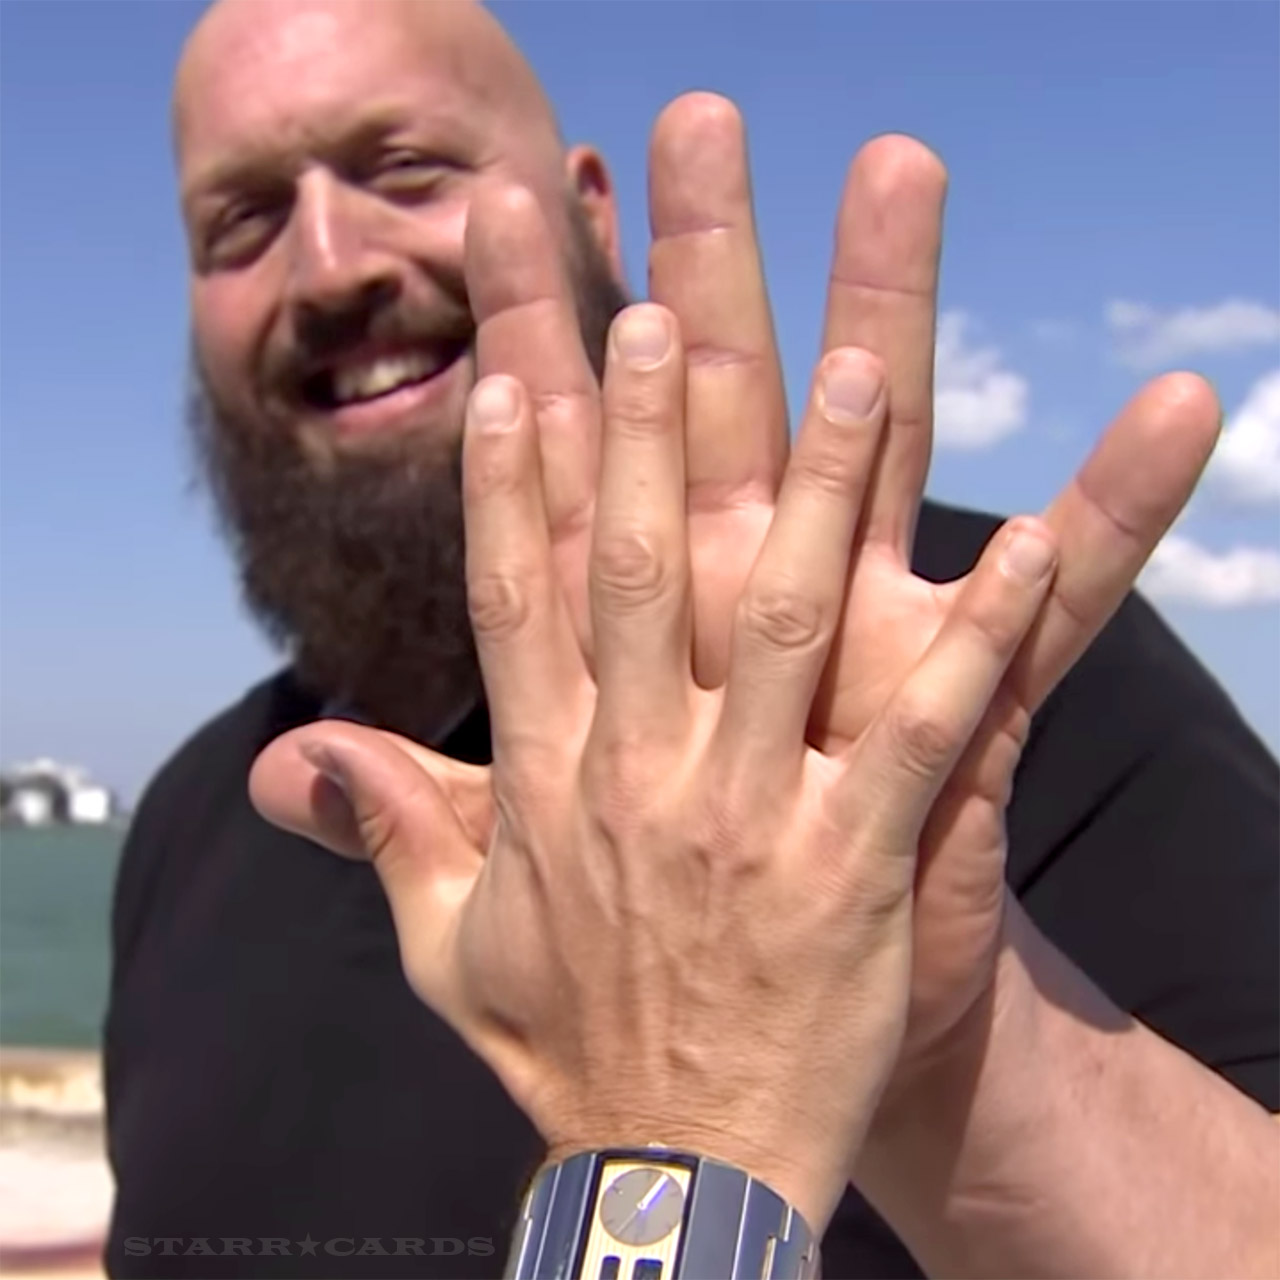 The Big Shows Hand Is More Than Twice As That Of A Normal Adult